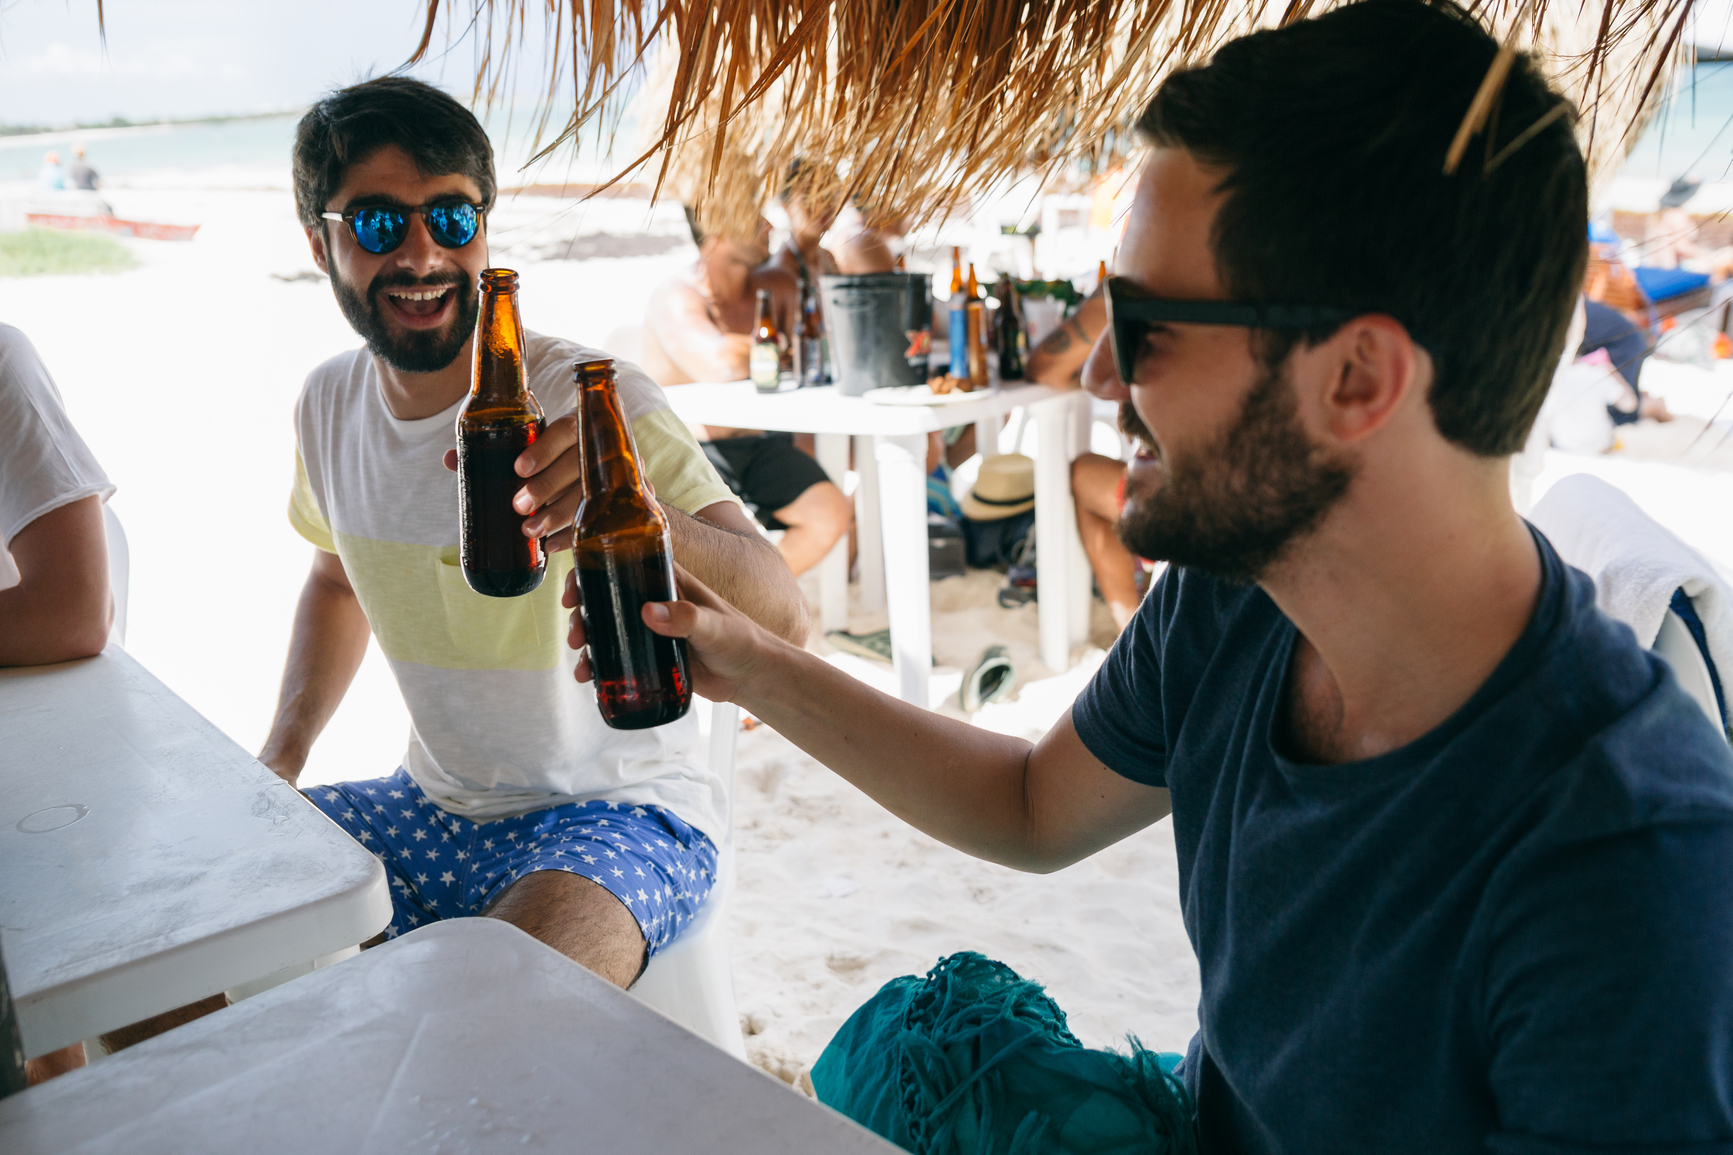 Two friends toasting their bottle of beers on a beach bar